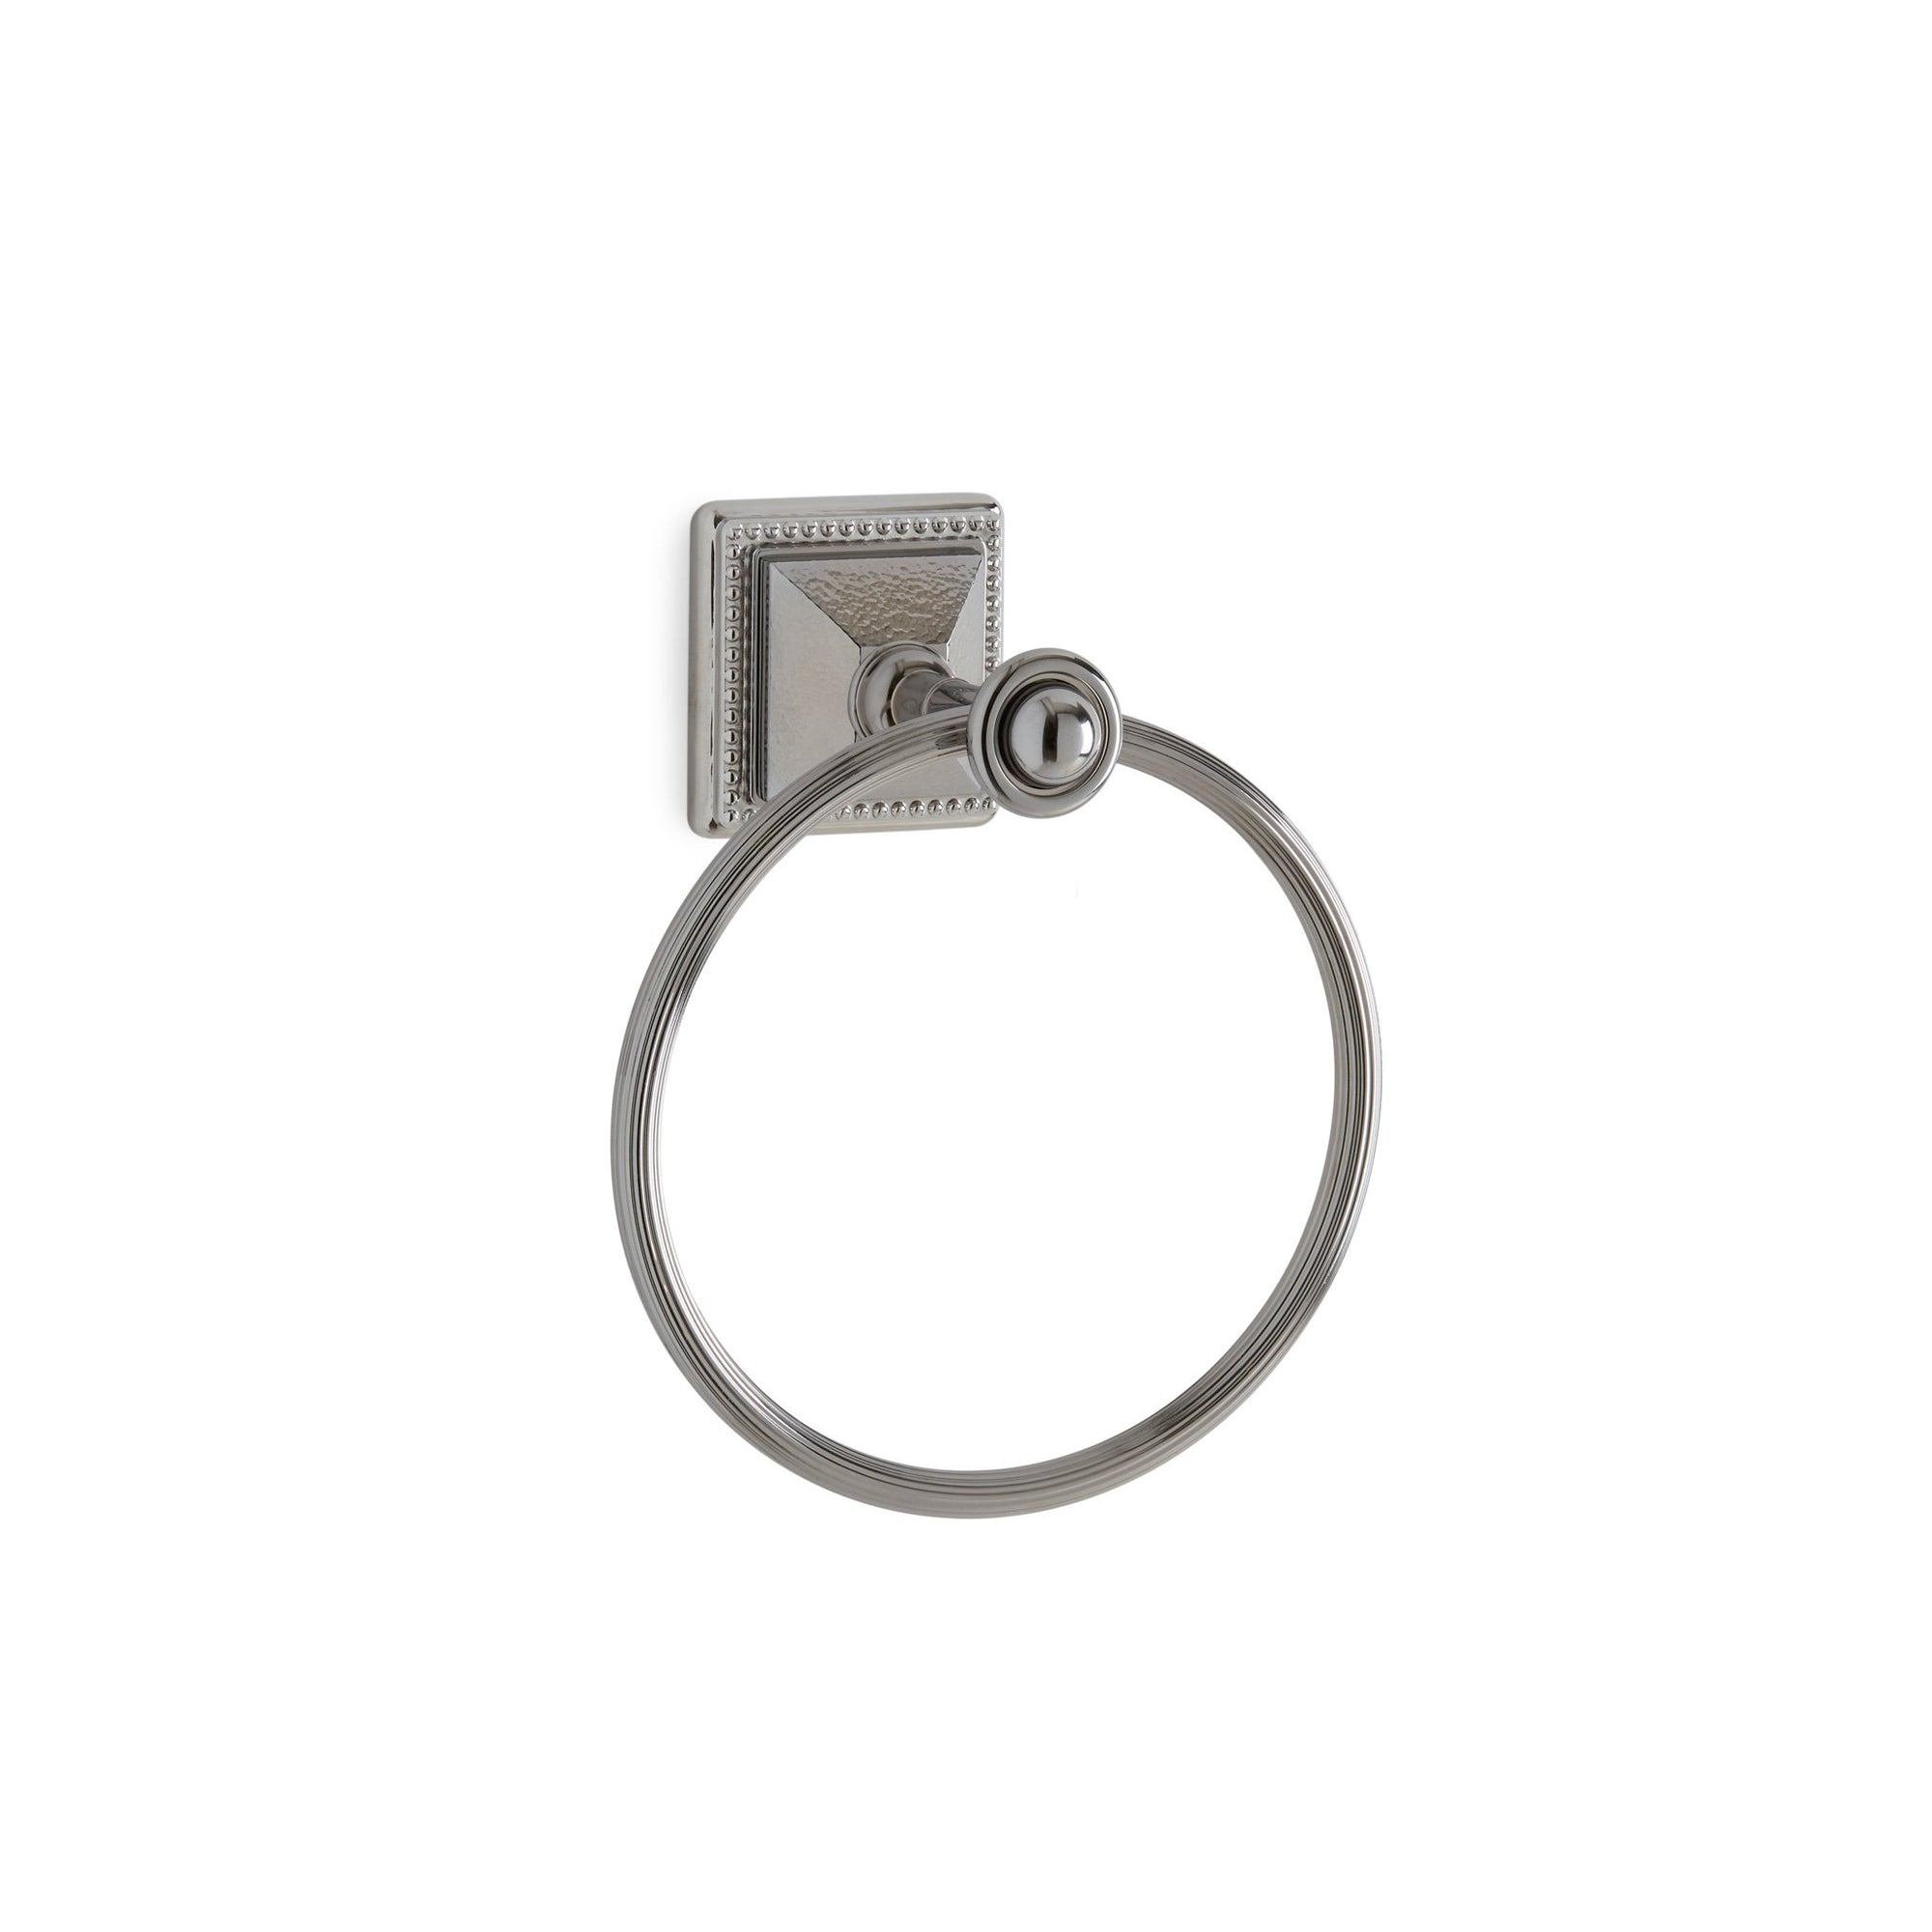 3401-HMRD-CP Sherle Wagner International Hammered Pyramid Towel Ring in Polished Chrome metal finish